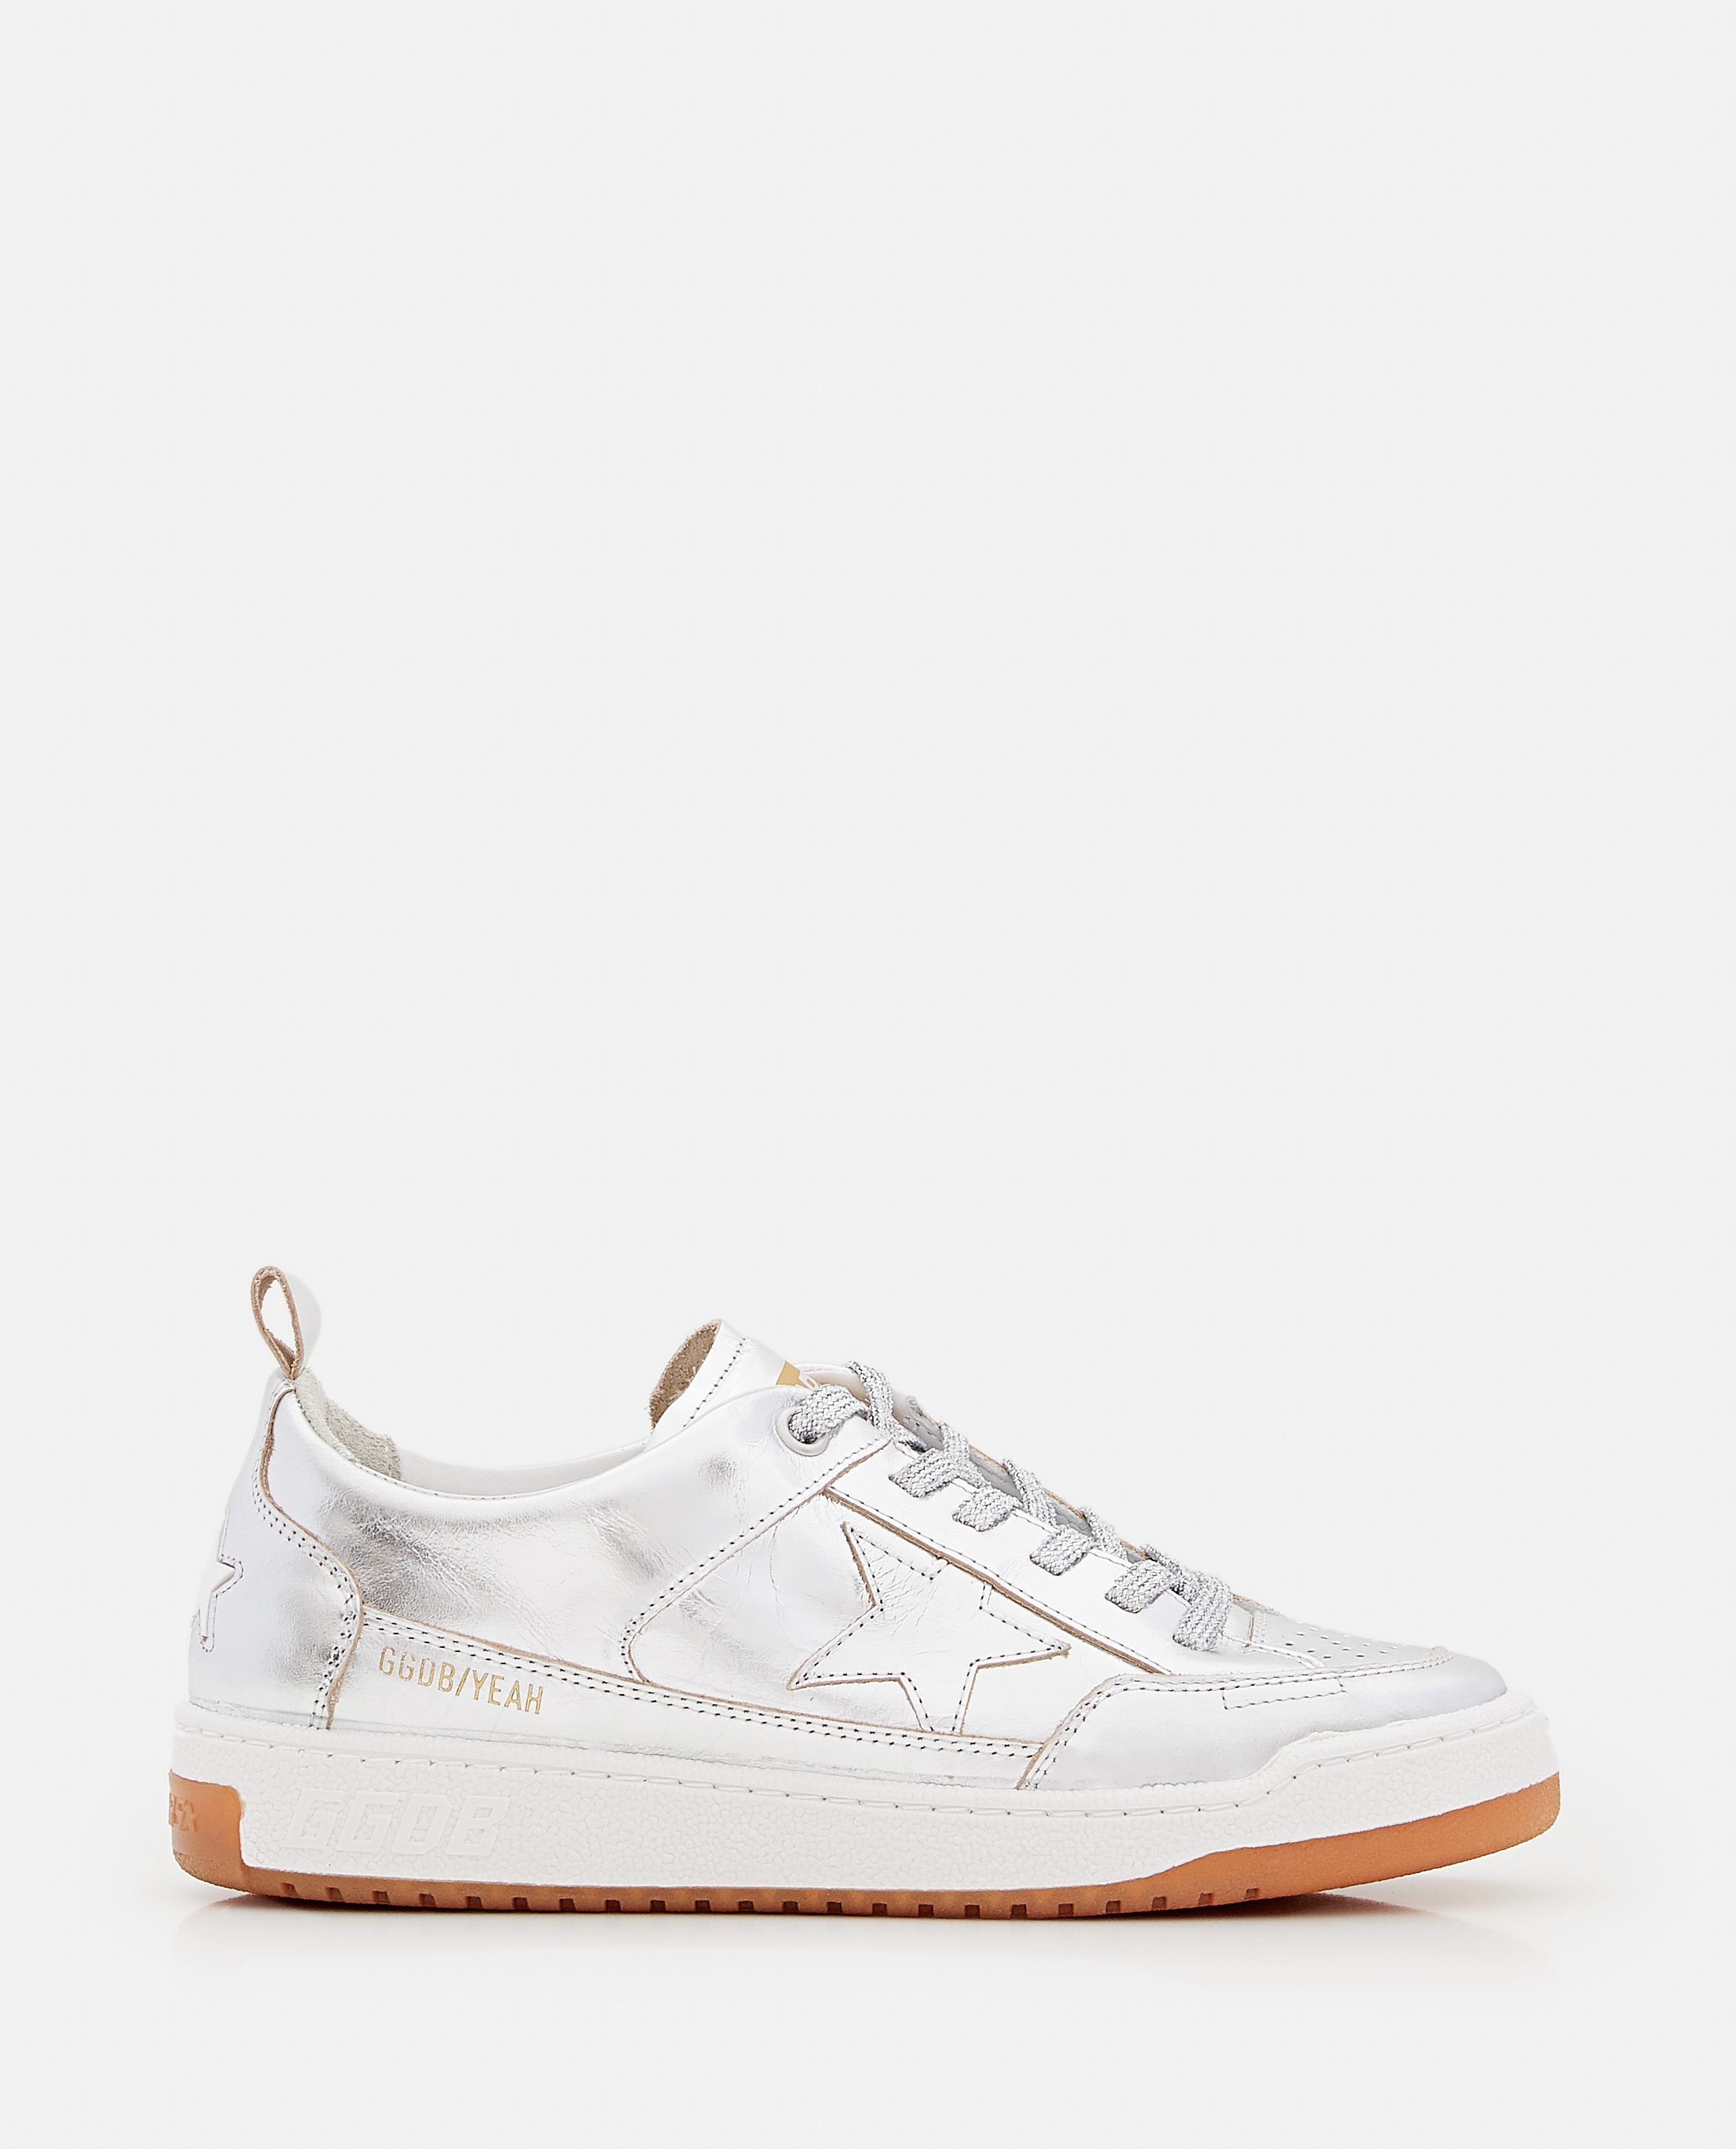 YEAH LAMINATED LEATHER SNEAKERS Women Golden Goose 000322260047121 1